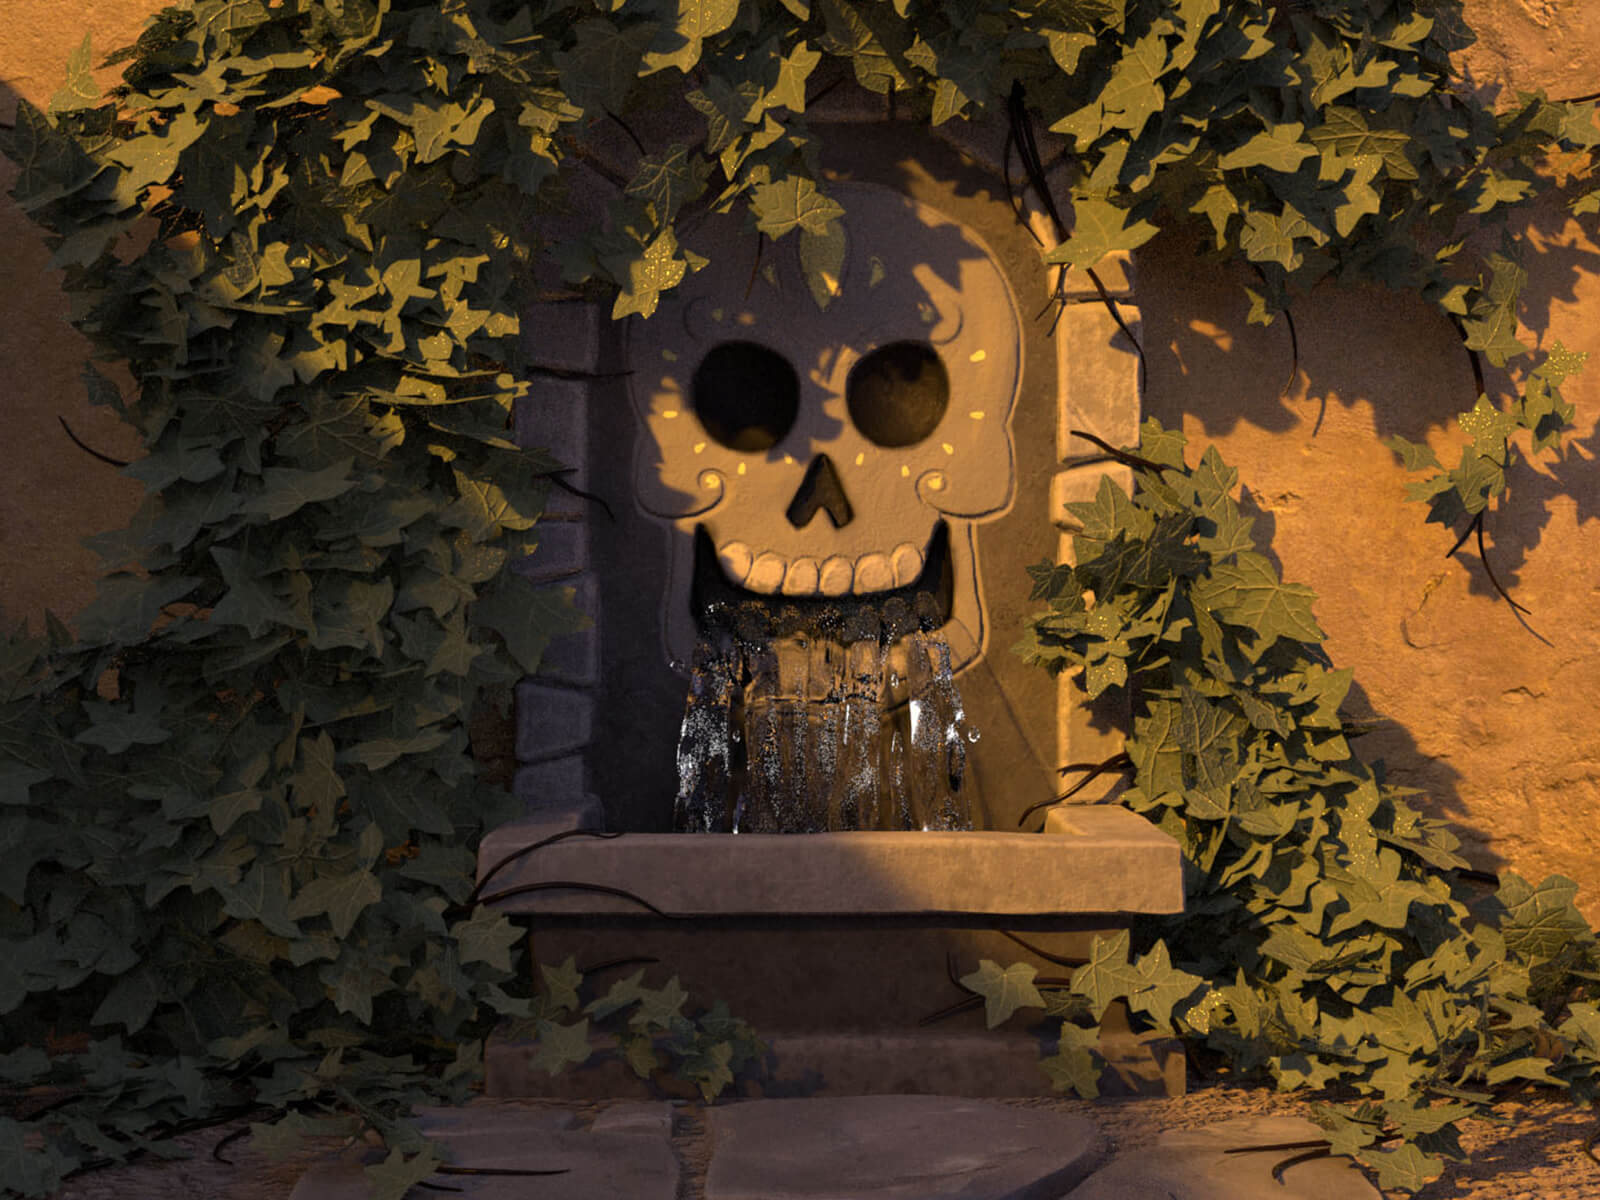 A fountain in the shape of a skull